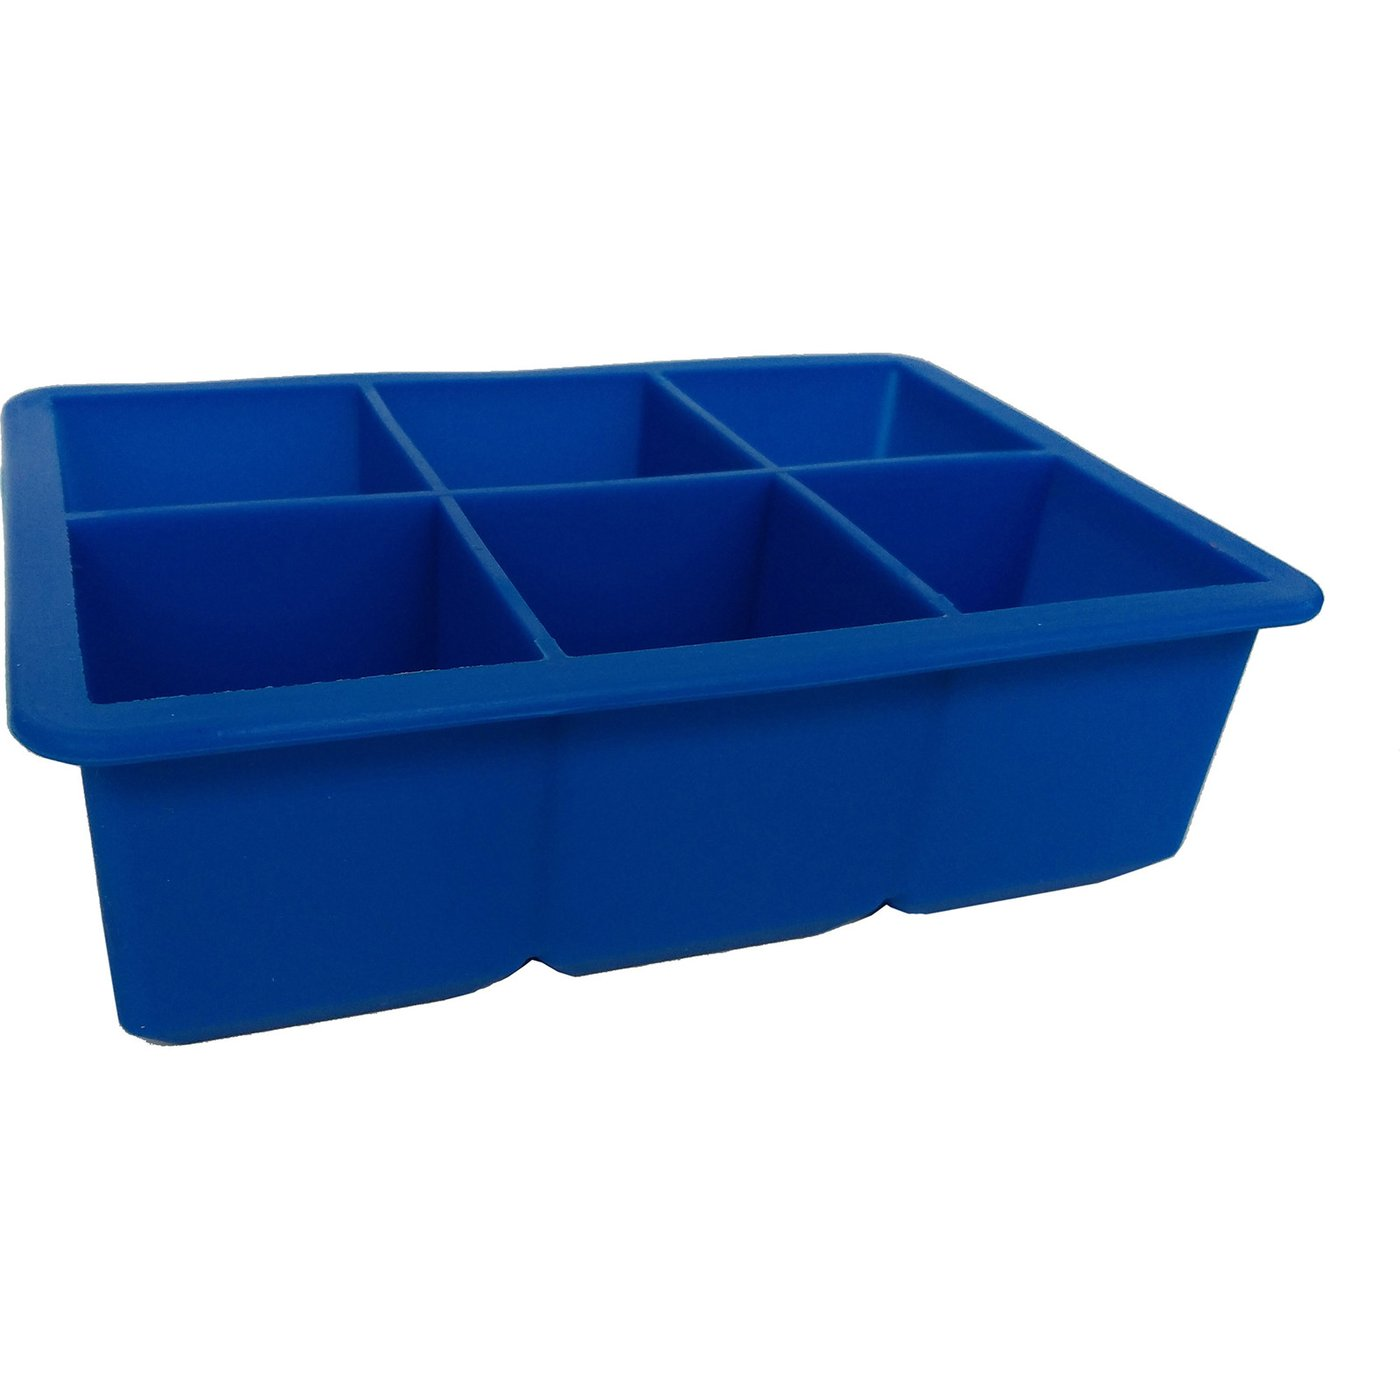 AI Tray Blue - Ice Cube Trays